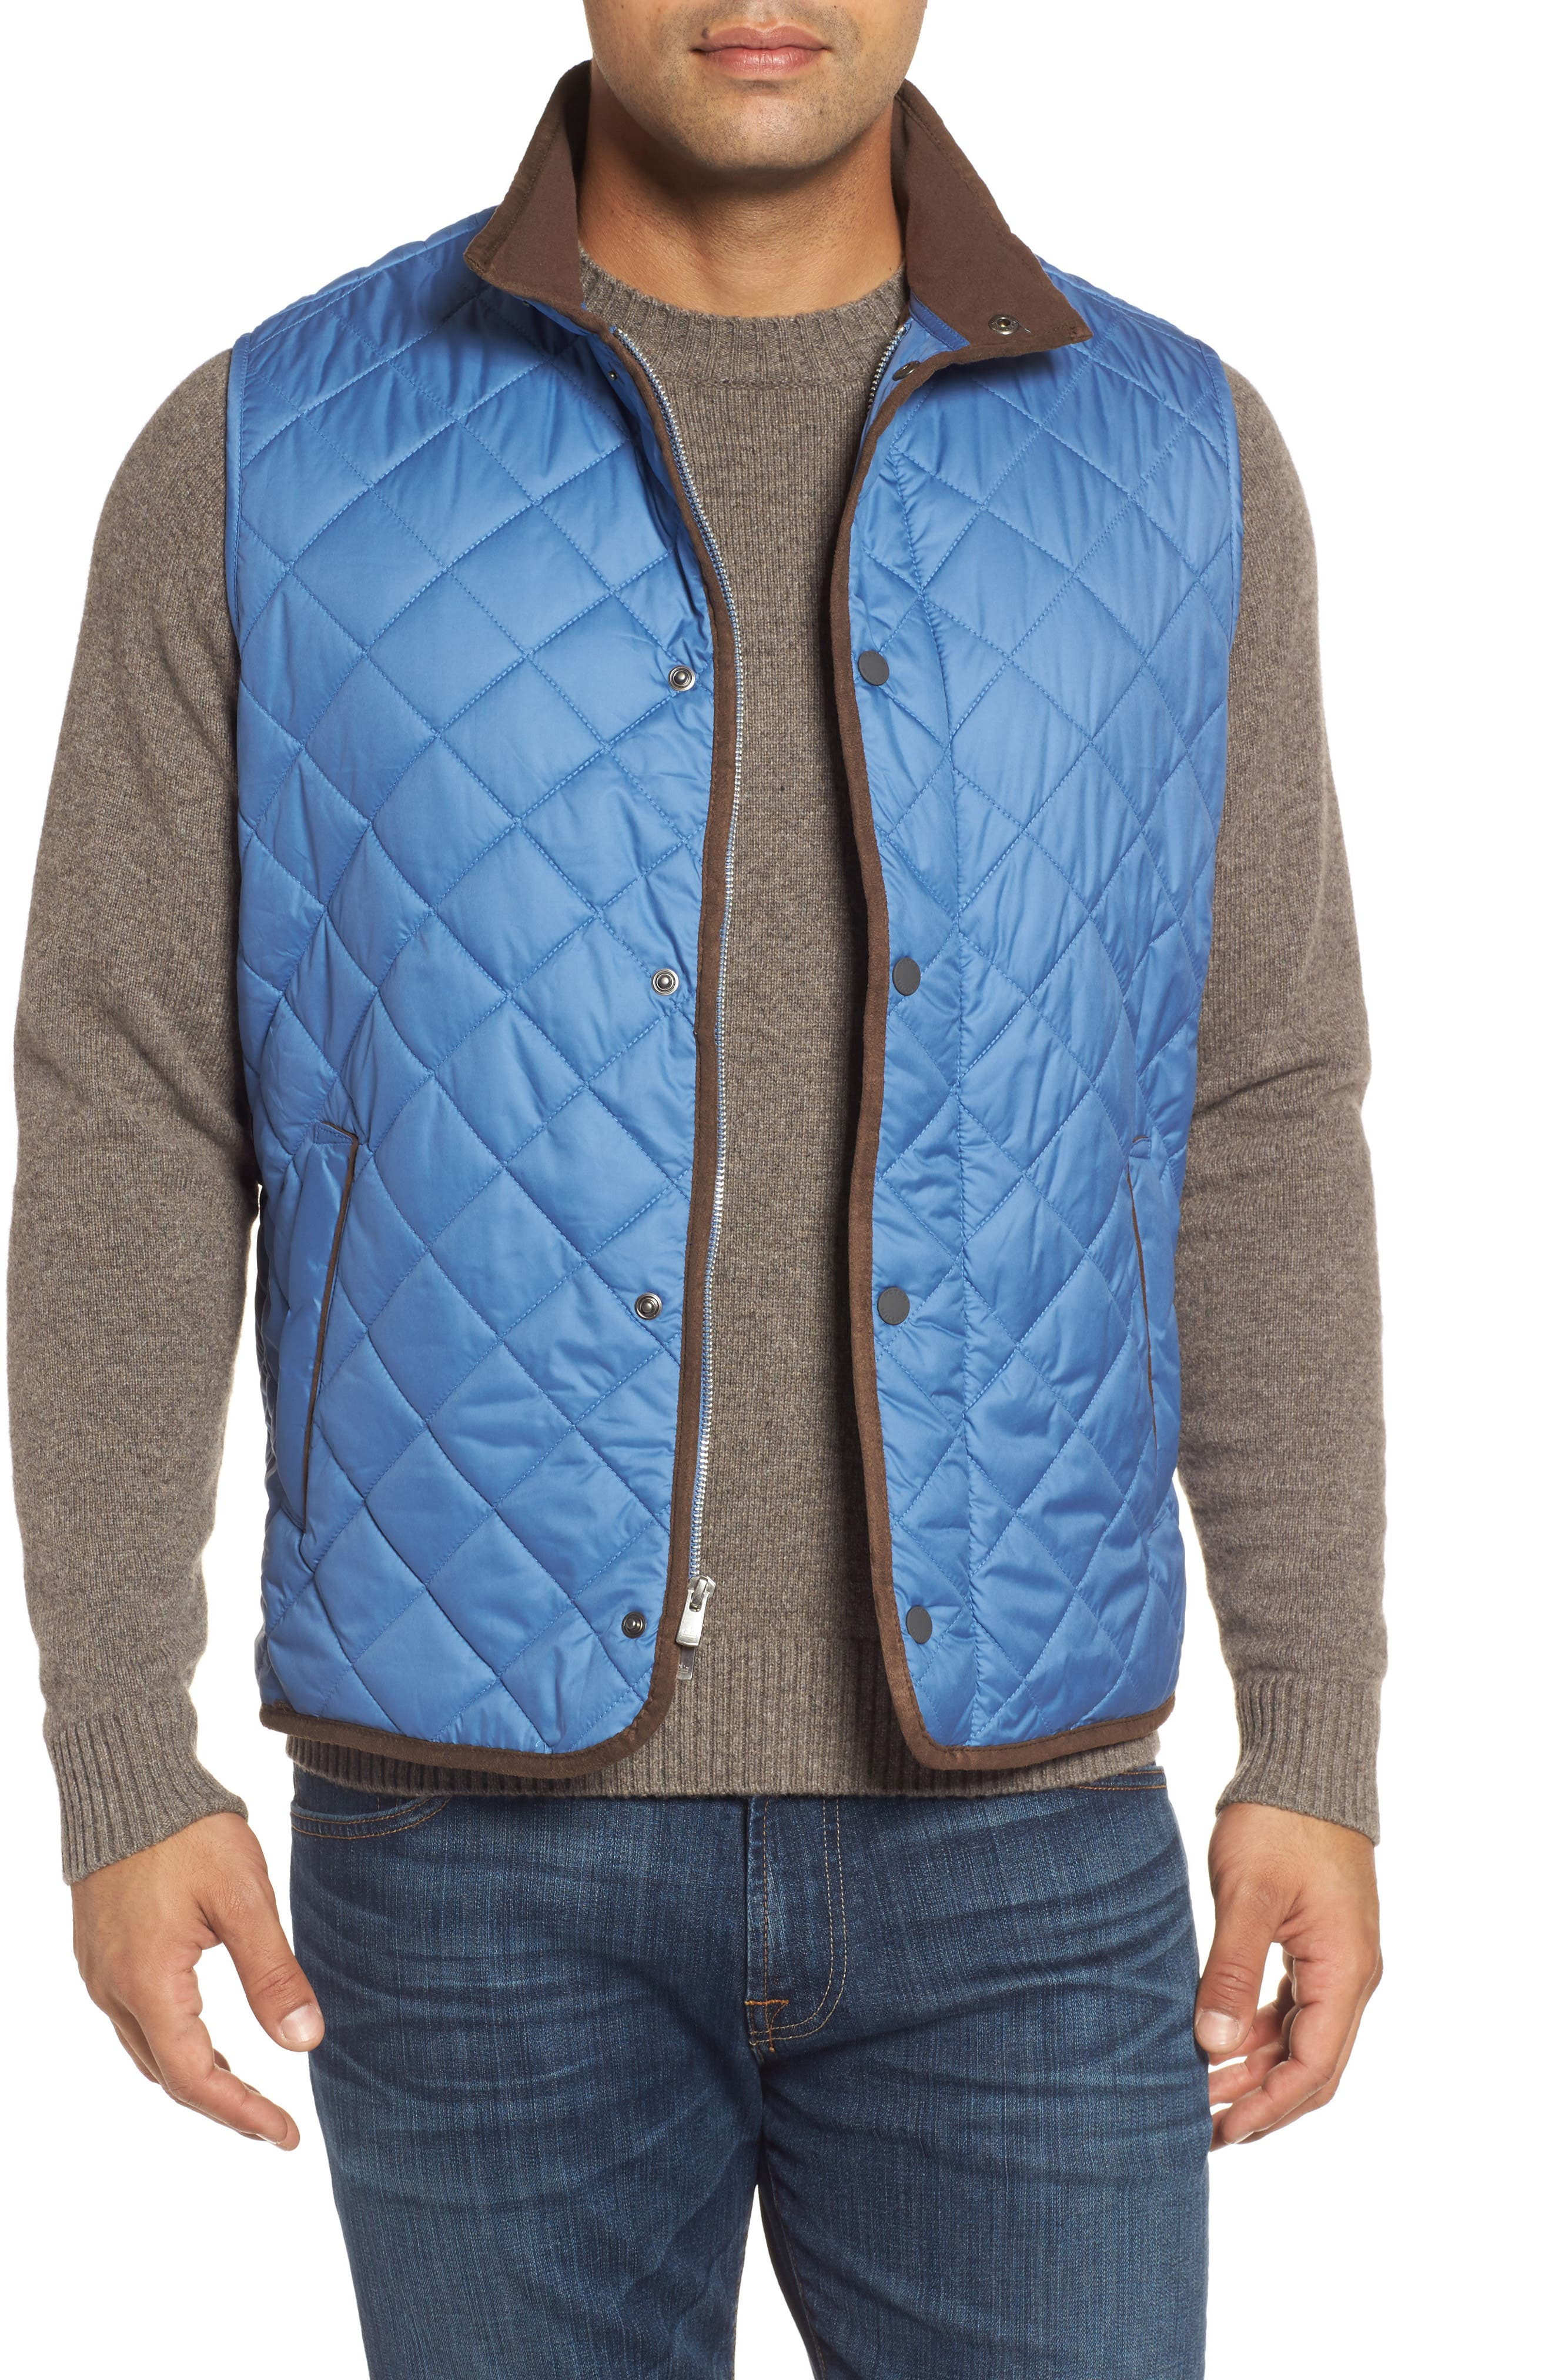 Essex Quilted Vest,                             Main thumbnail 1, color,                             Moon Blue